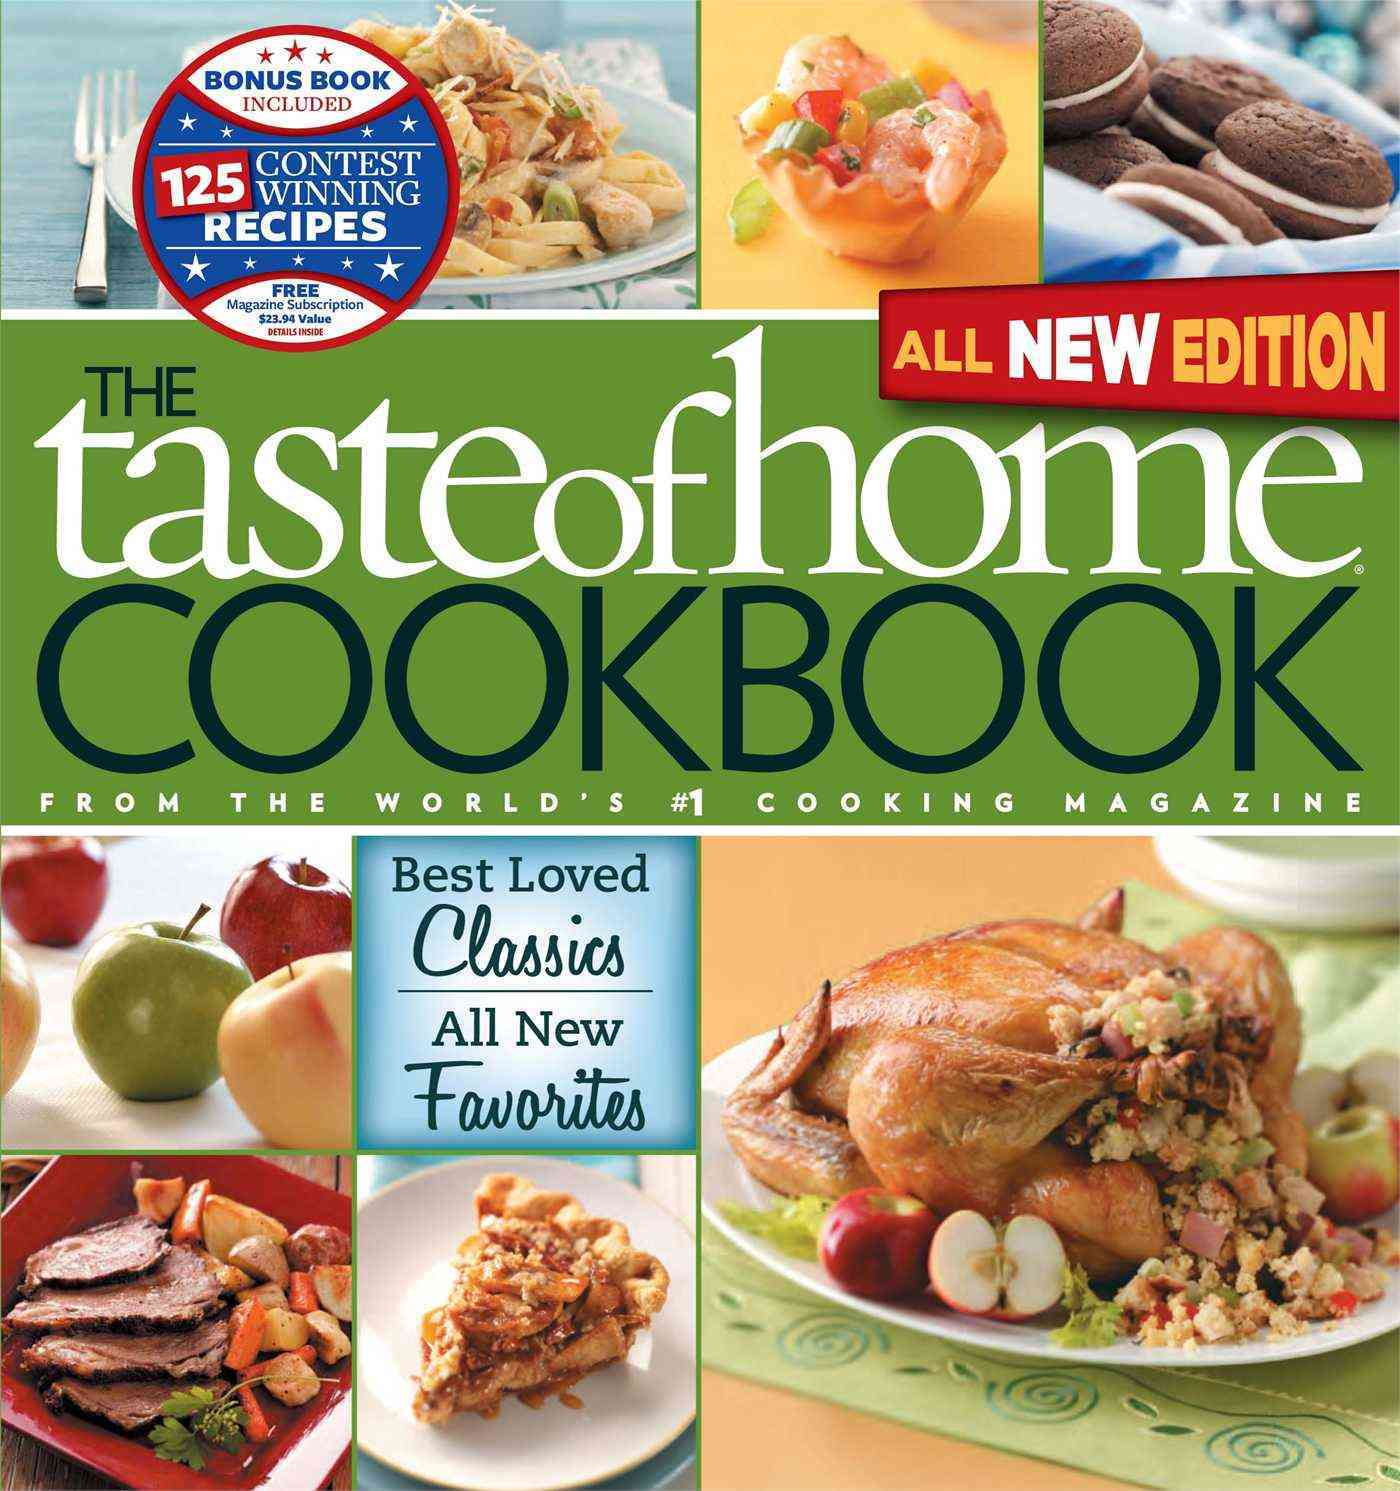 The Taste of Home Cookbook: Best Loved Classics, All New Favorites (Loose-leaf) - Thumbnail 0